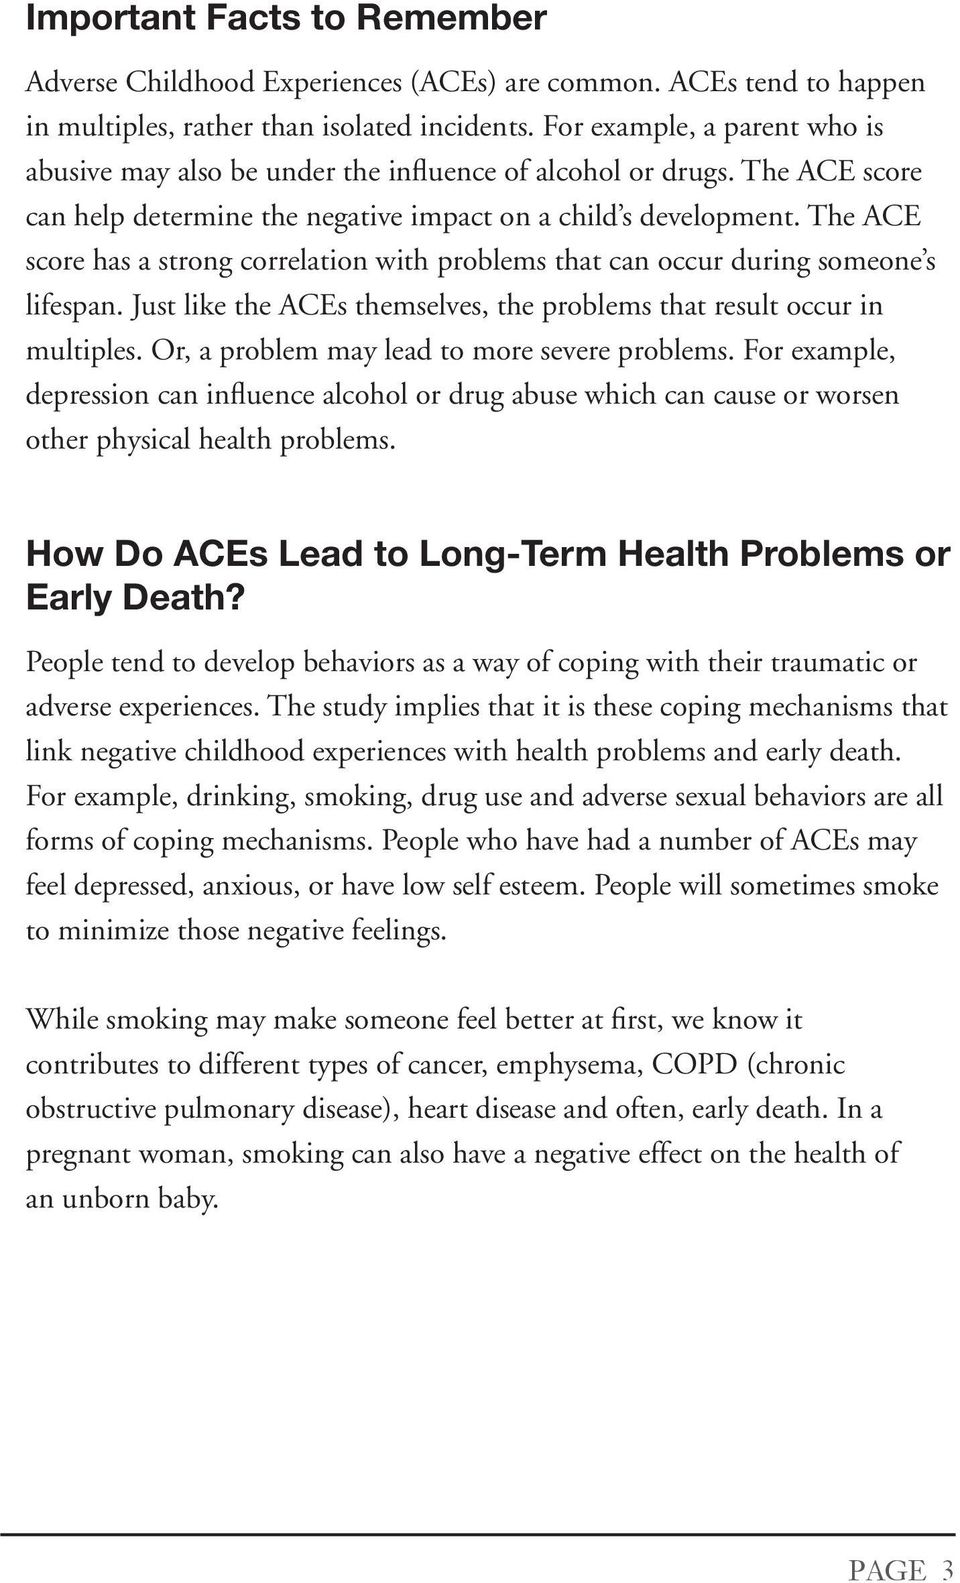 The ACE sce has a strong crelation with problems that can occur during someone s lifespan. Just like the ACEs themselves, the problems that result occur in multiples.